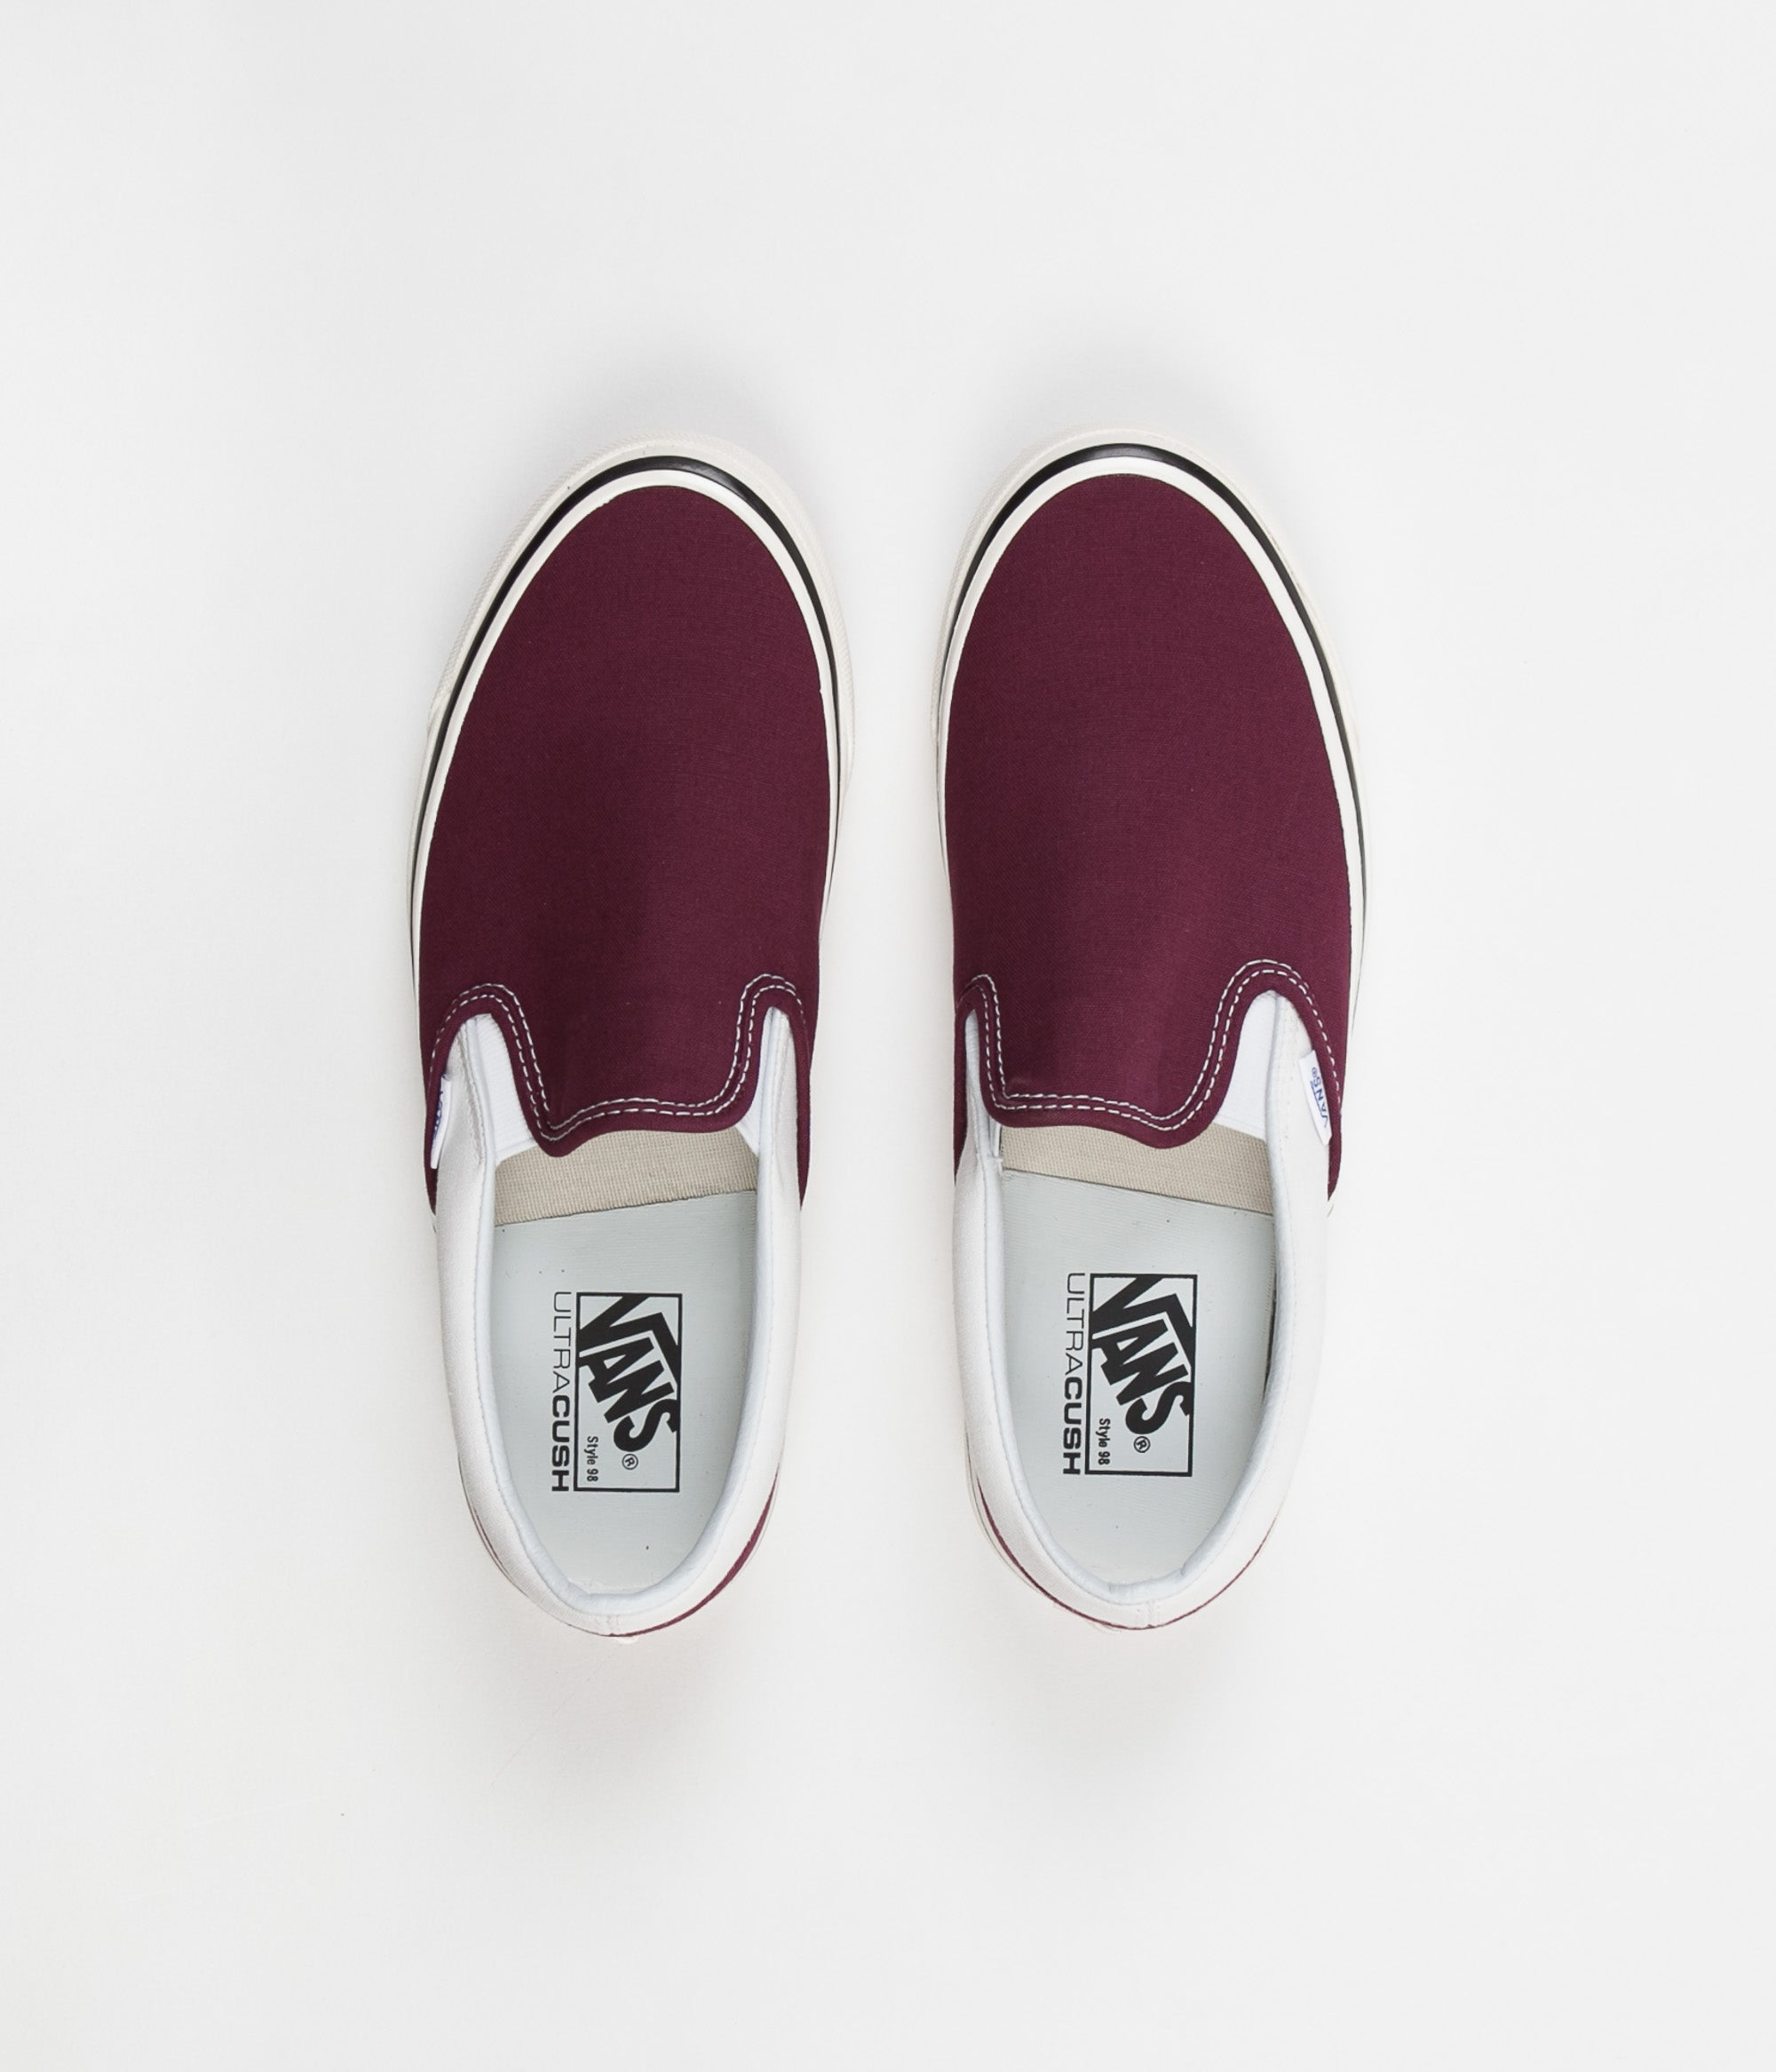 3cfa60e7652 Vans Classic Slip-On 98 DX Anaheim Factory Shoes - OG Burgundy   White ...